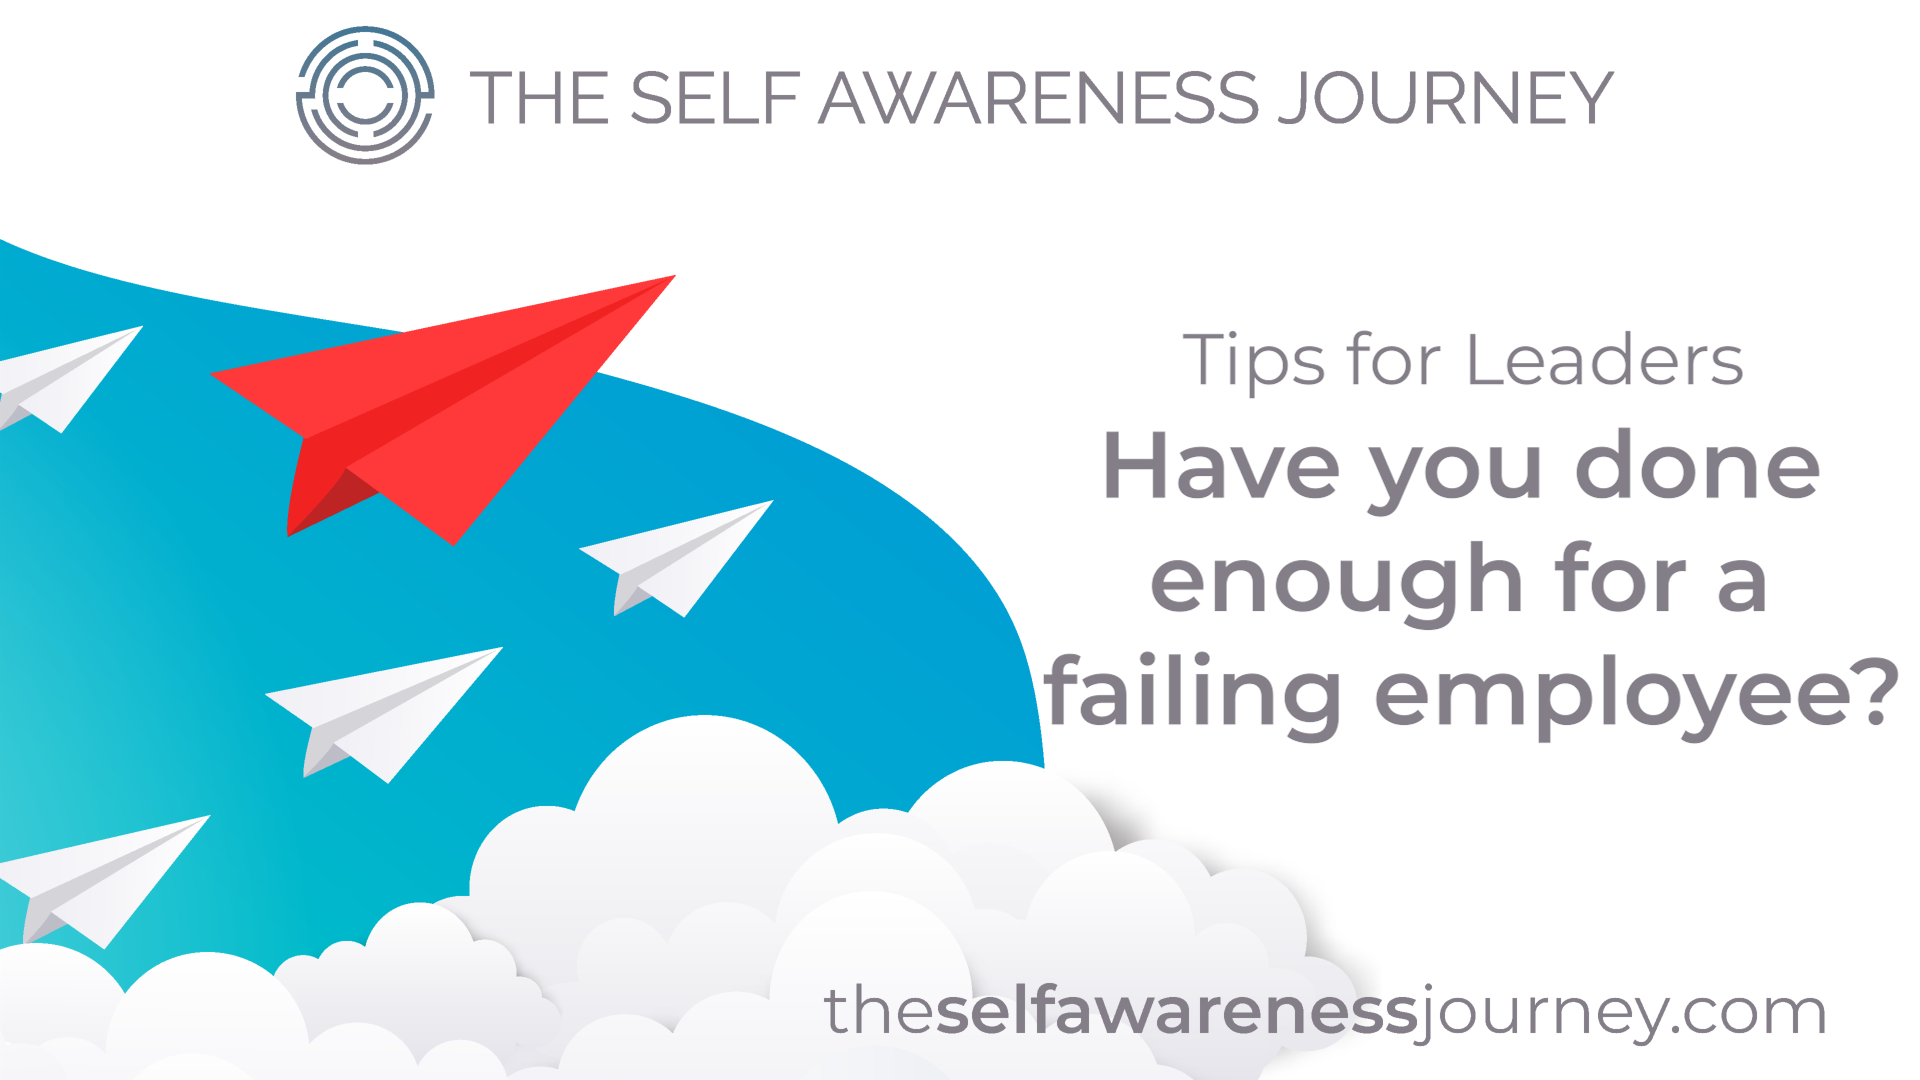 Have you done enough for a failing employee?